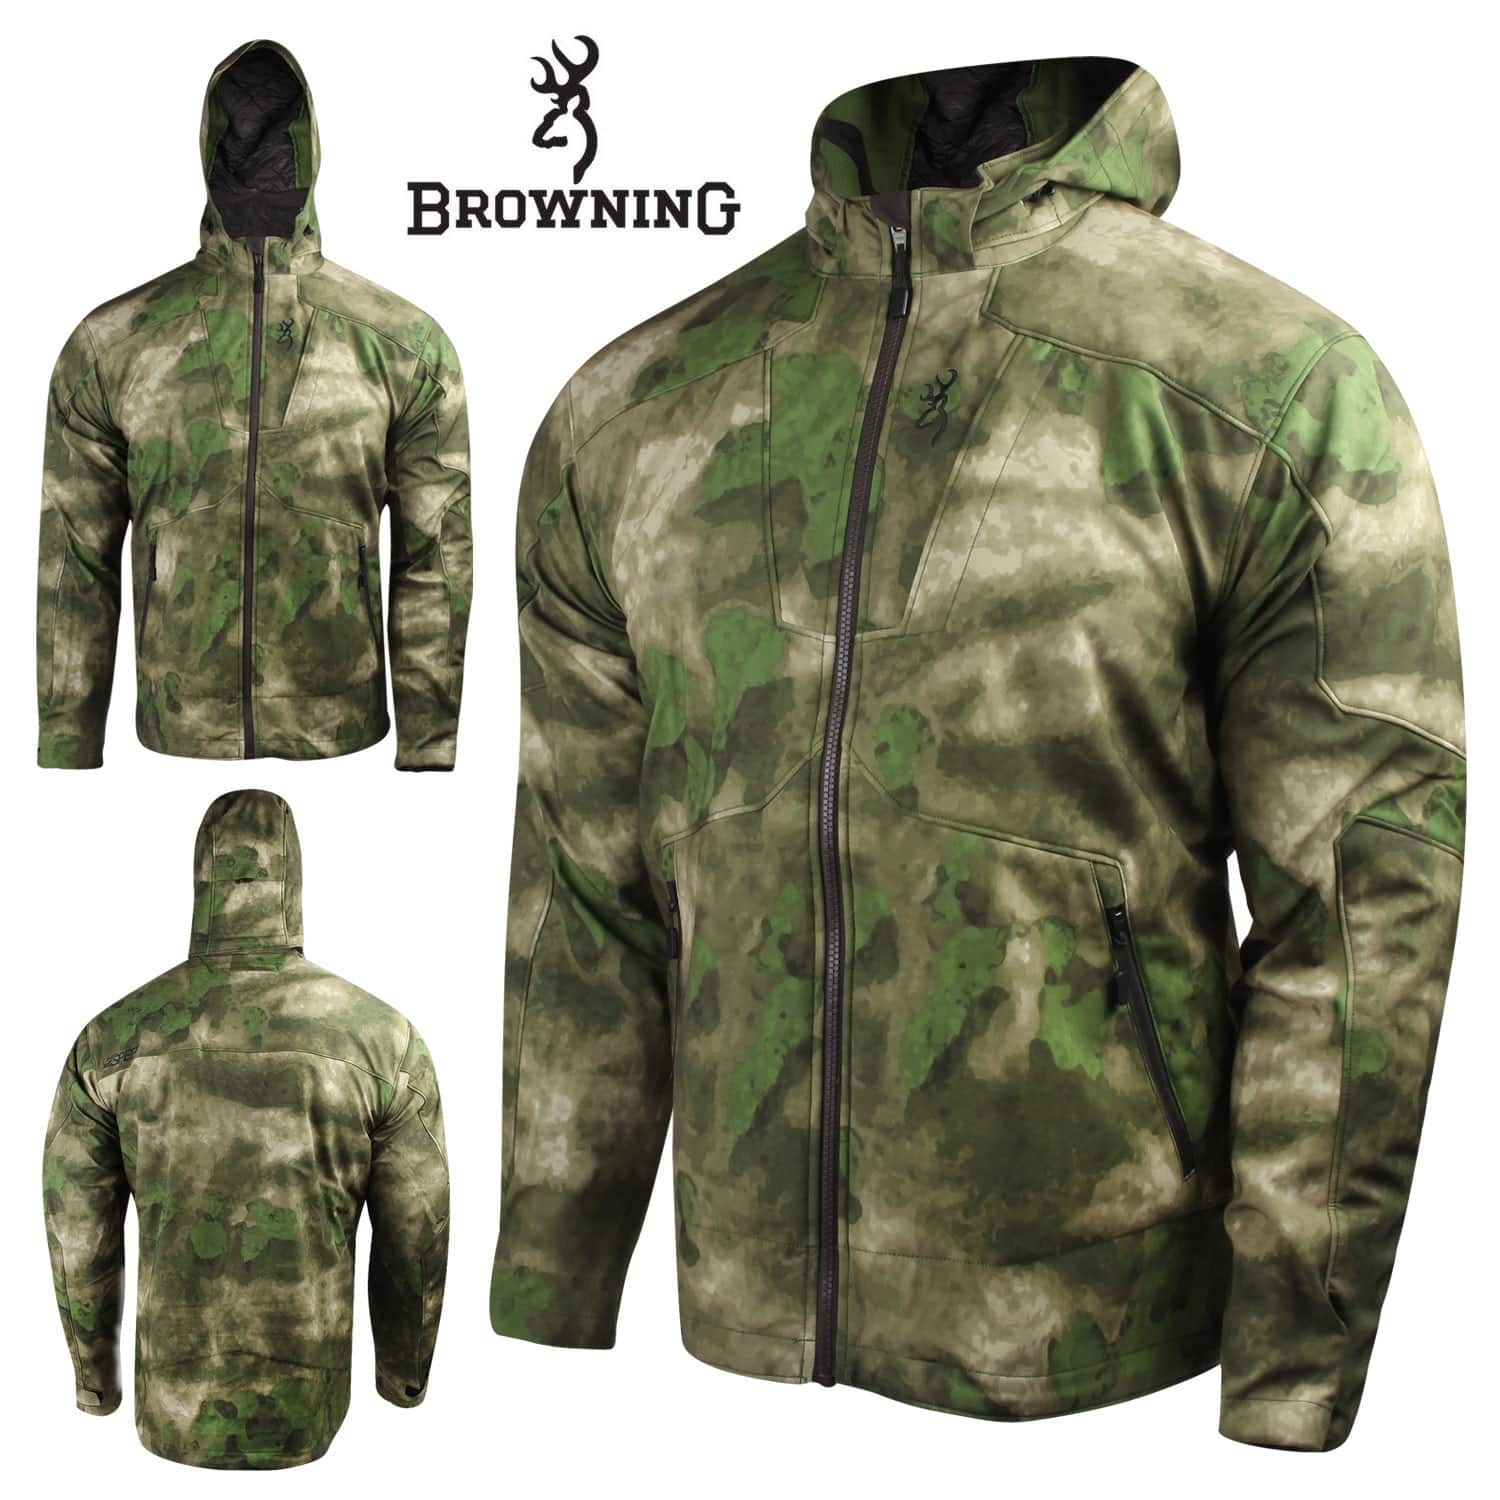 Browning Hell's Canyon Speed Hellfire Hunting Jacket (A-TACS FG) $70 + Free Shipping